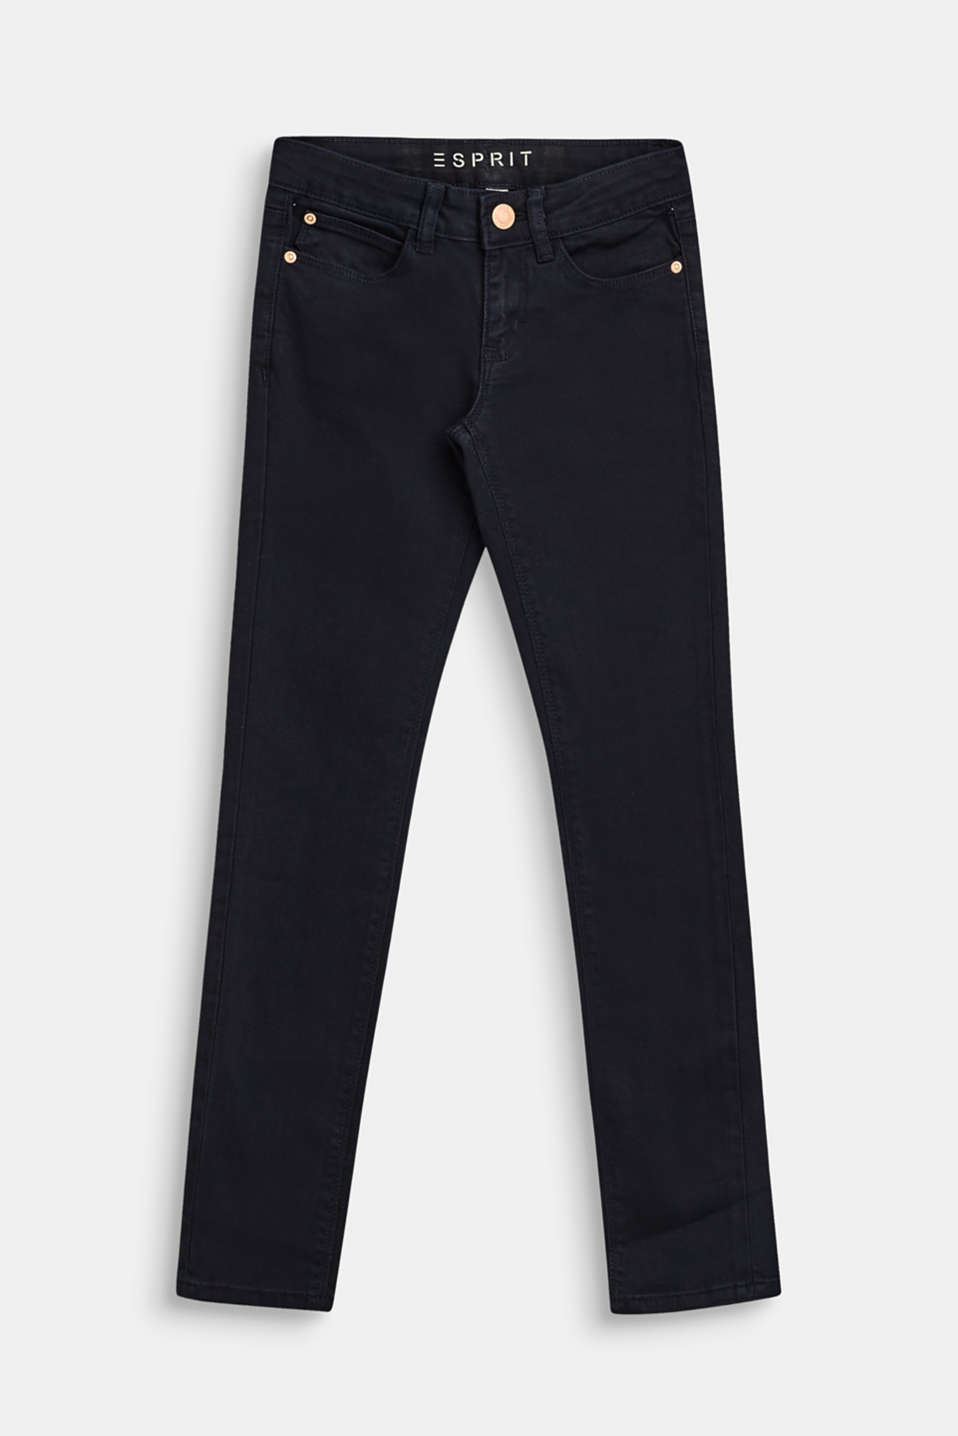 Esprit - Colored Stretch-Denim mit Verstellbund